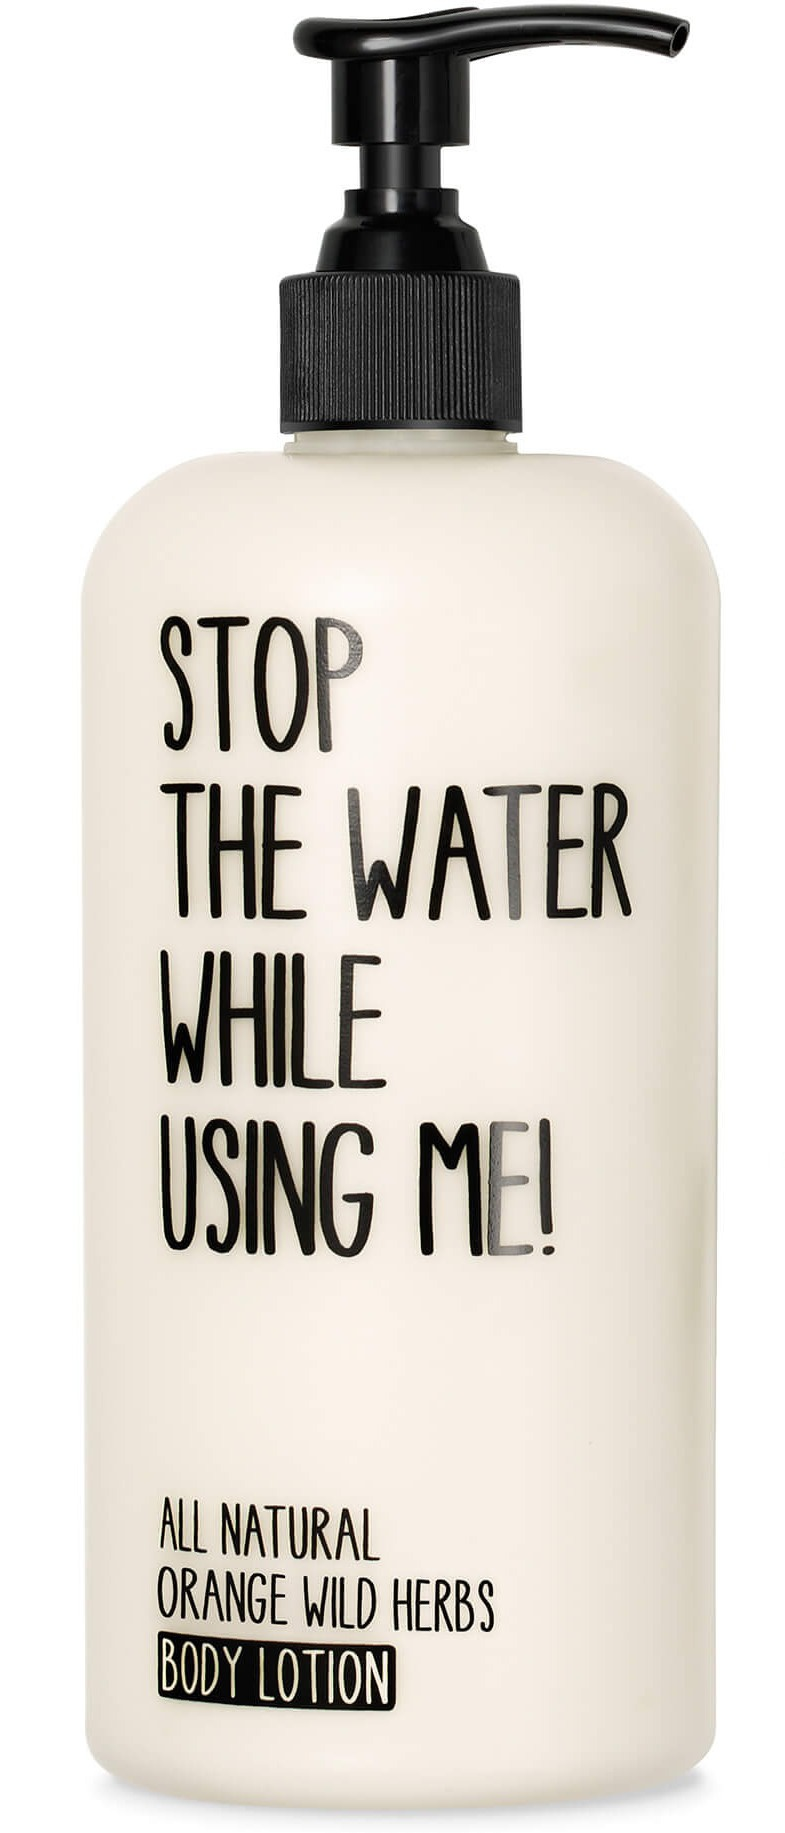 STOP THE WATER WHILE USING ME! Body Lotion Orange Wild Herbs